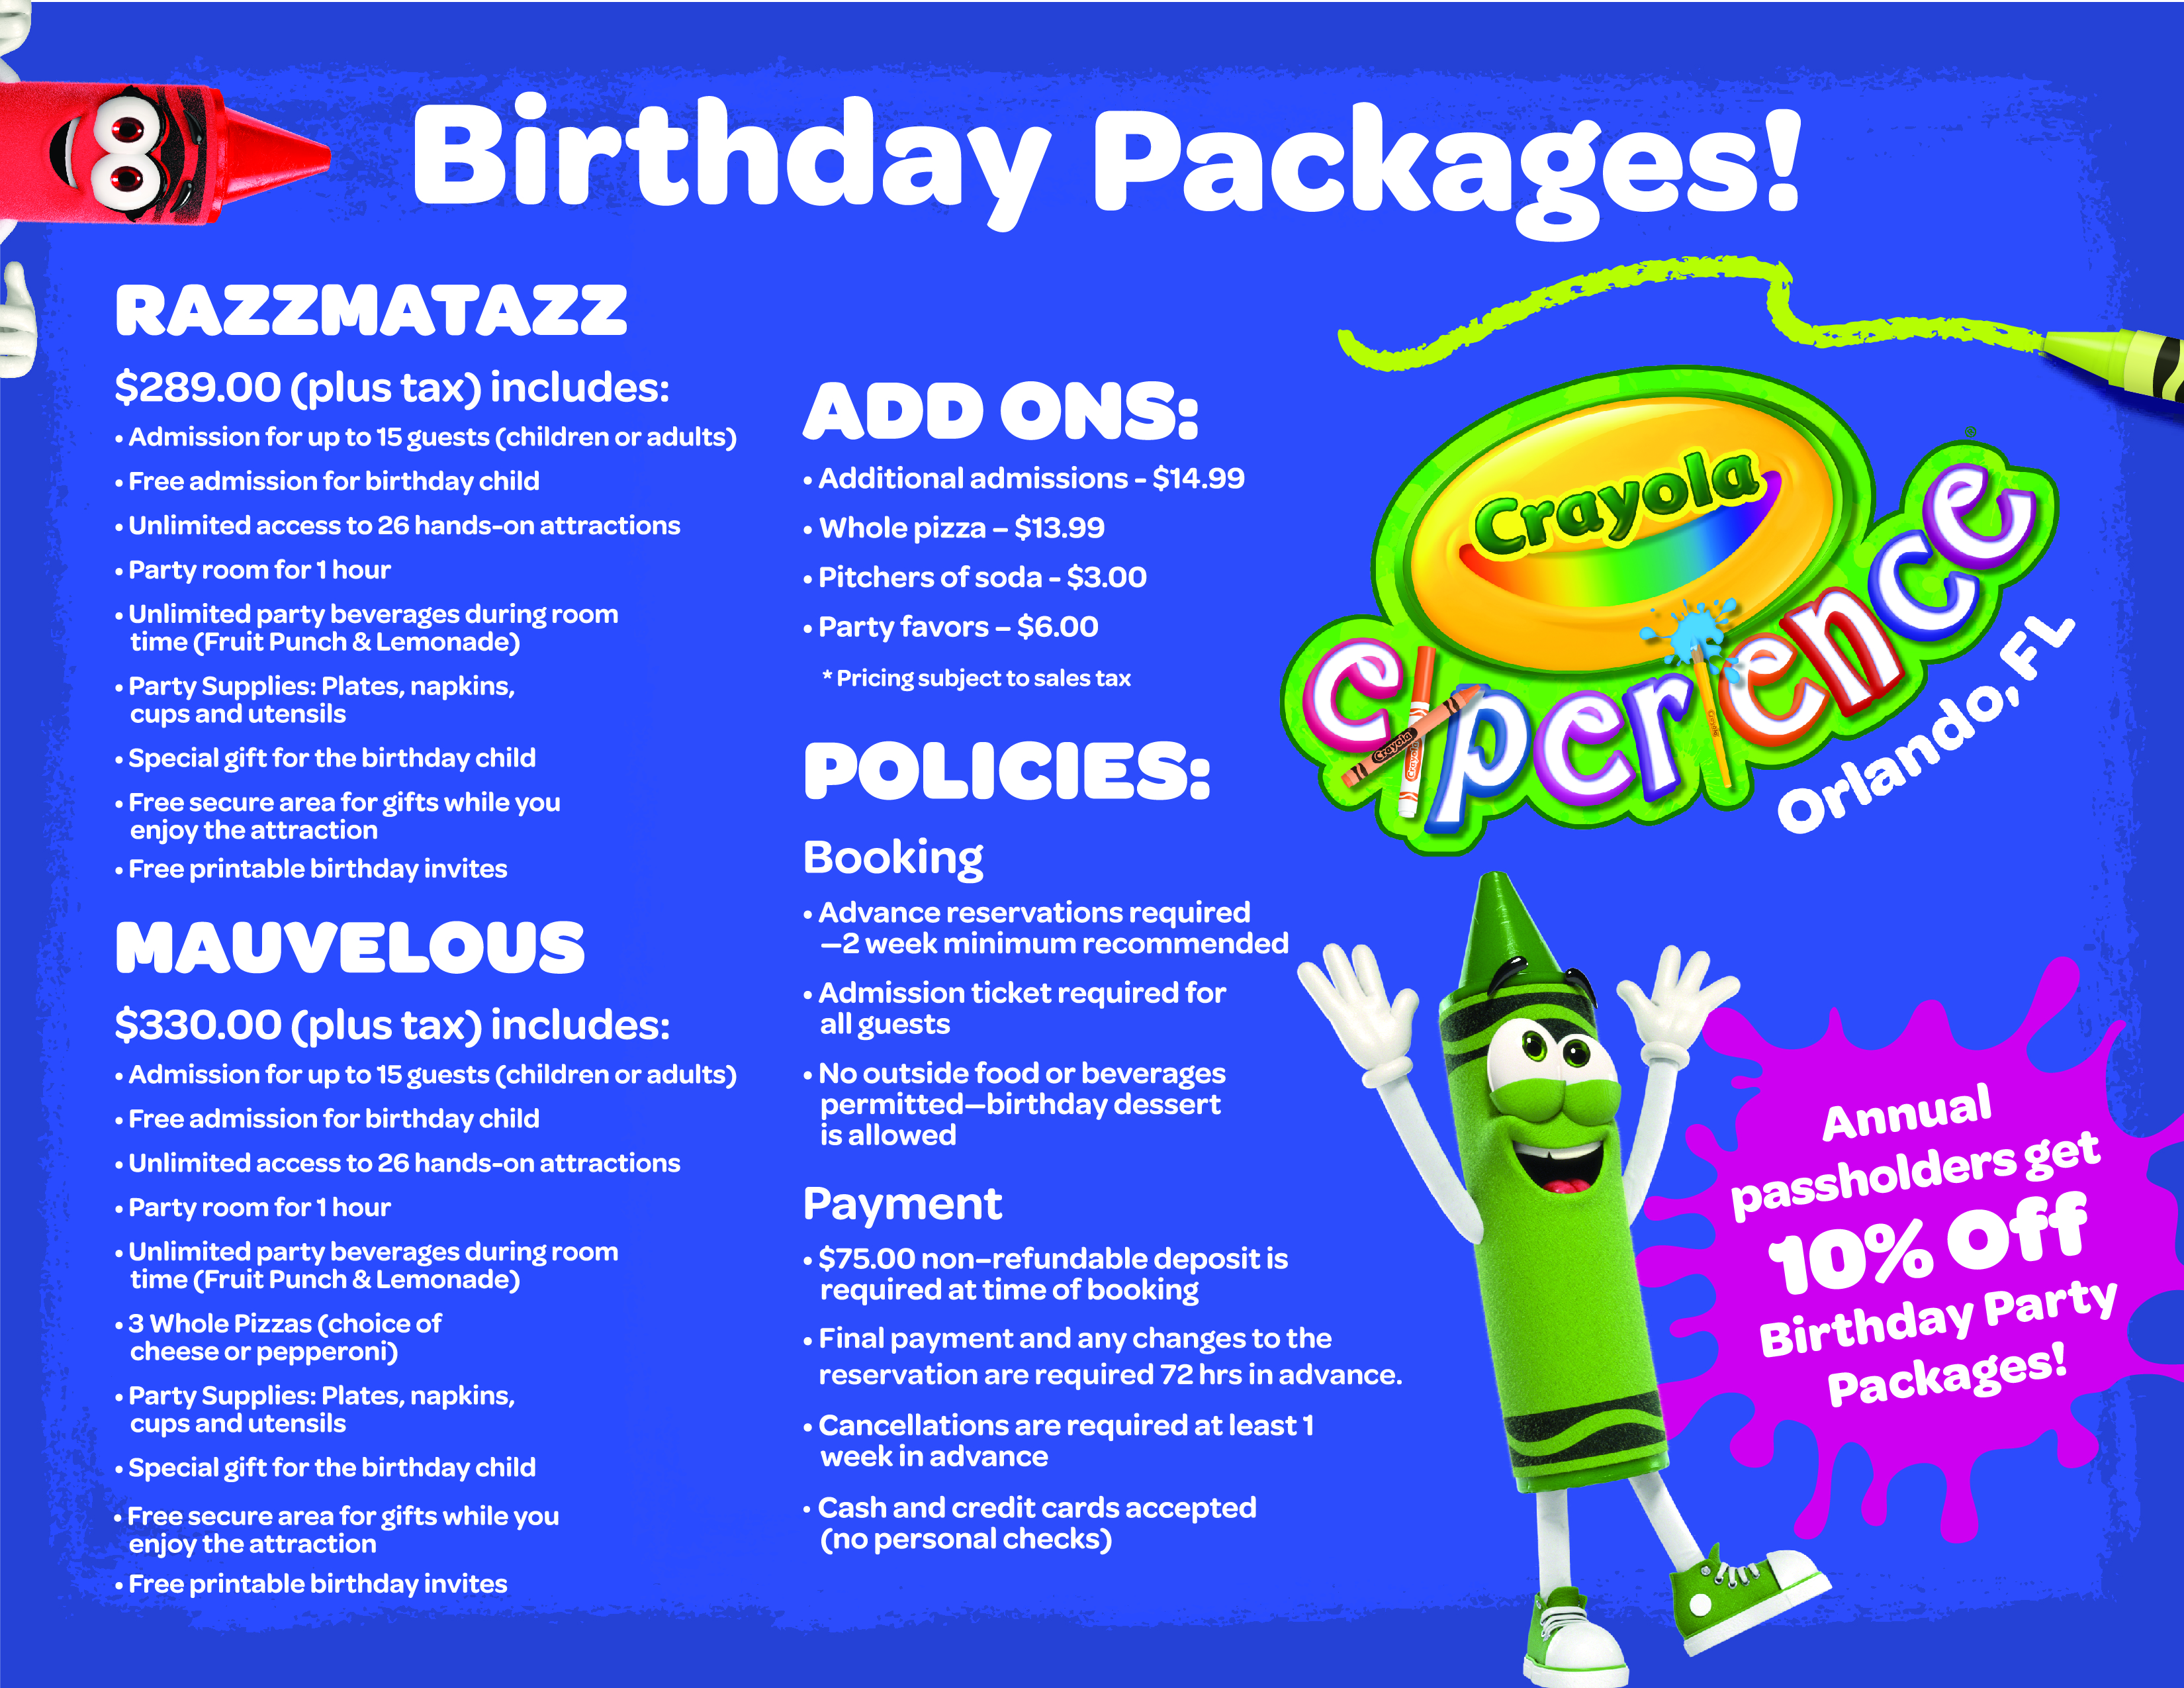 Packages Begin At 289 And Include Admission For 19 Guests Additional May Be Added To Accommodate Your Needs Access A Printable Birthday Package